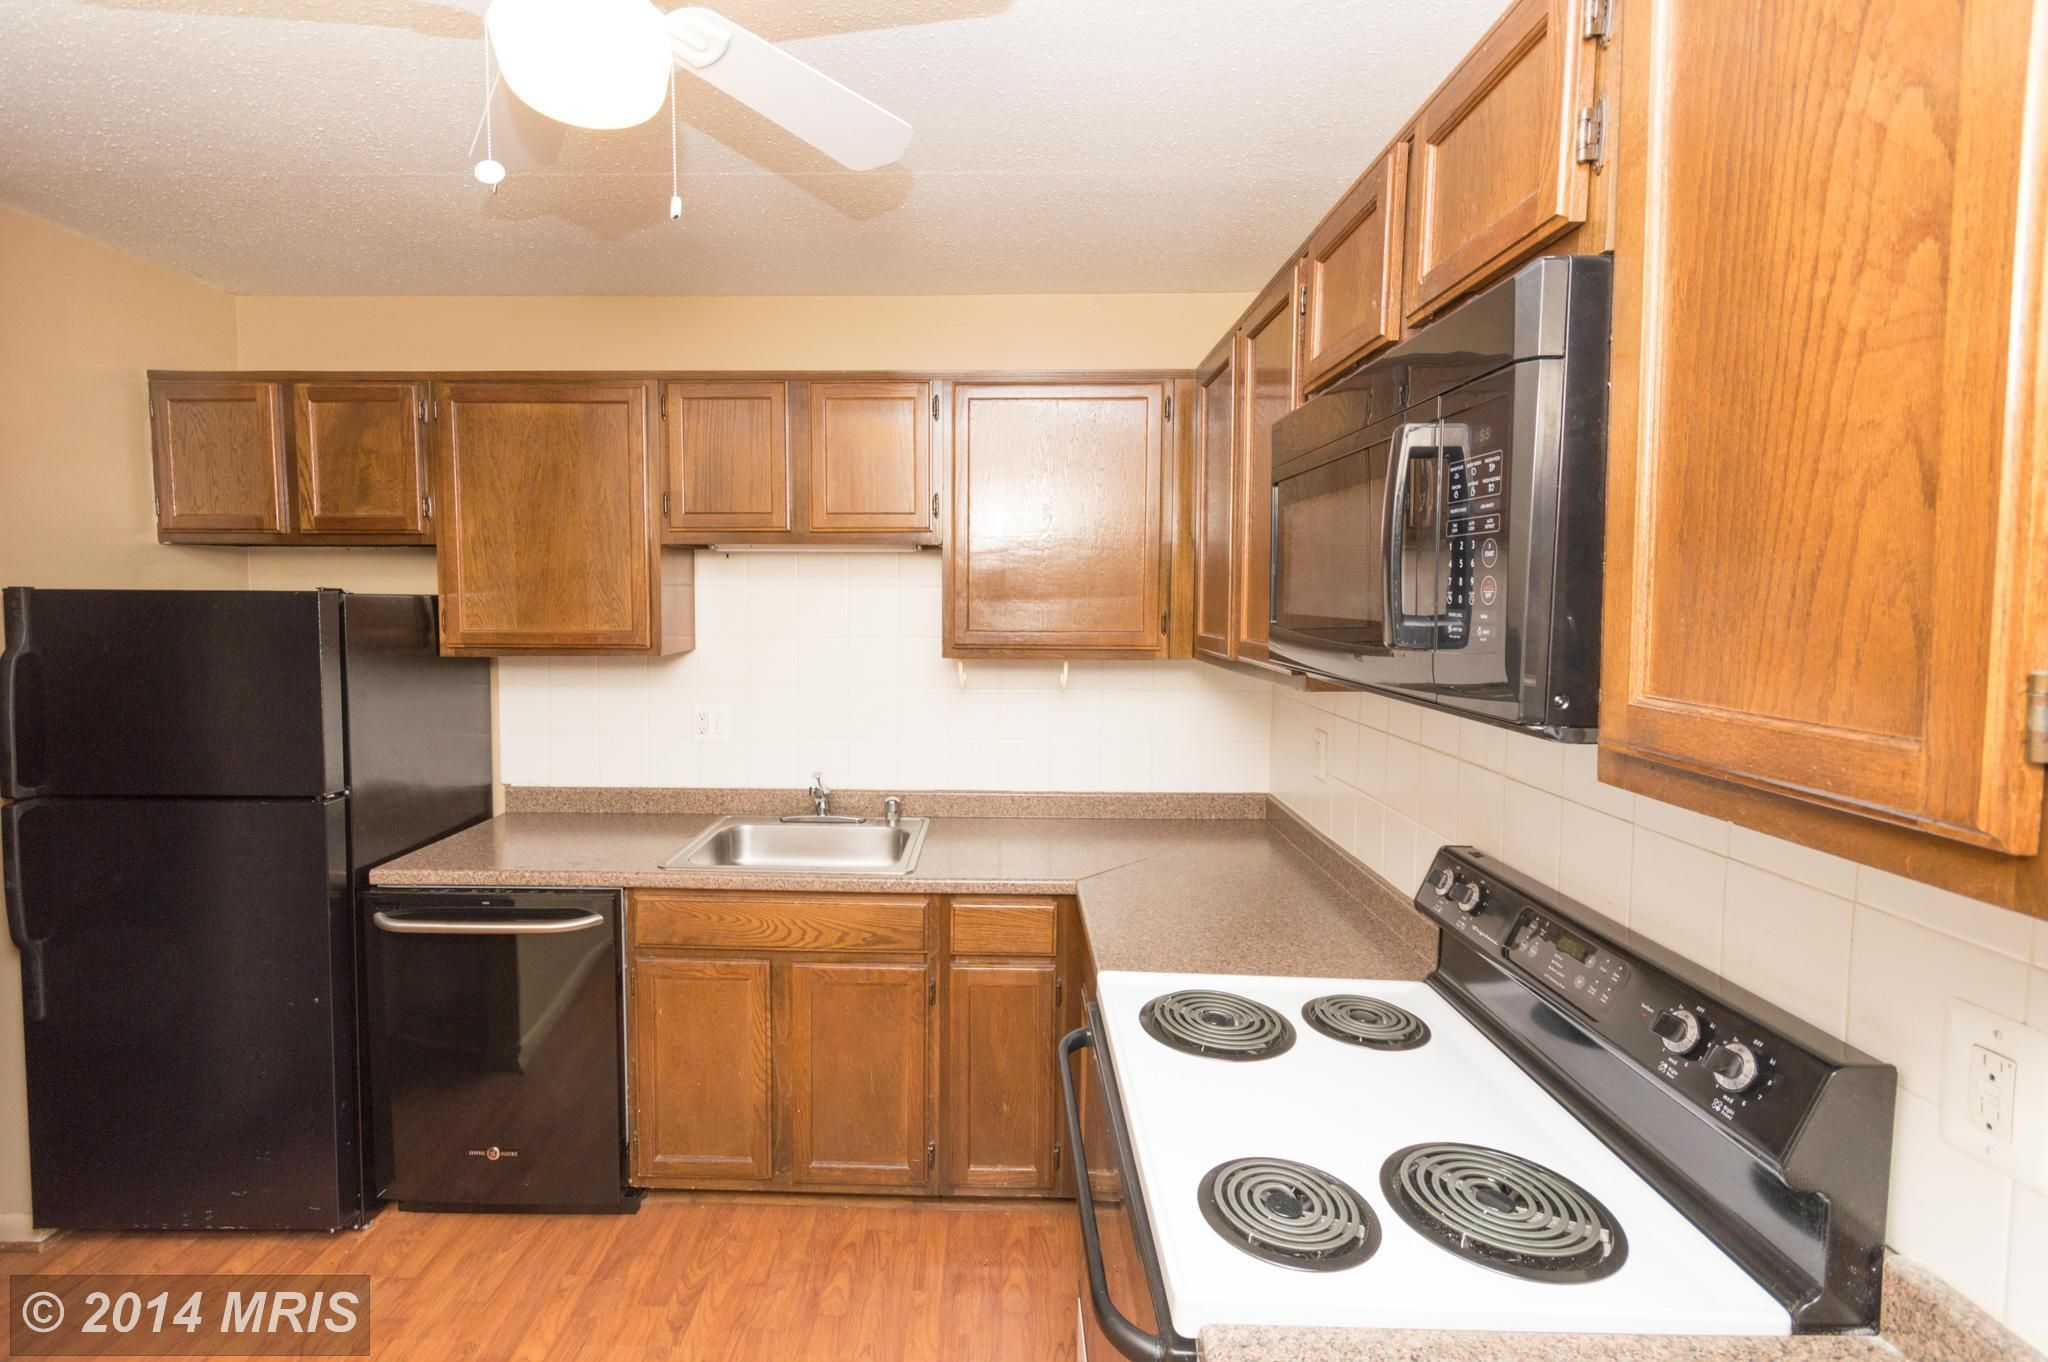 Commercial Kitchens For Rent In Maryland